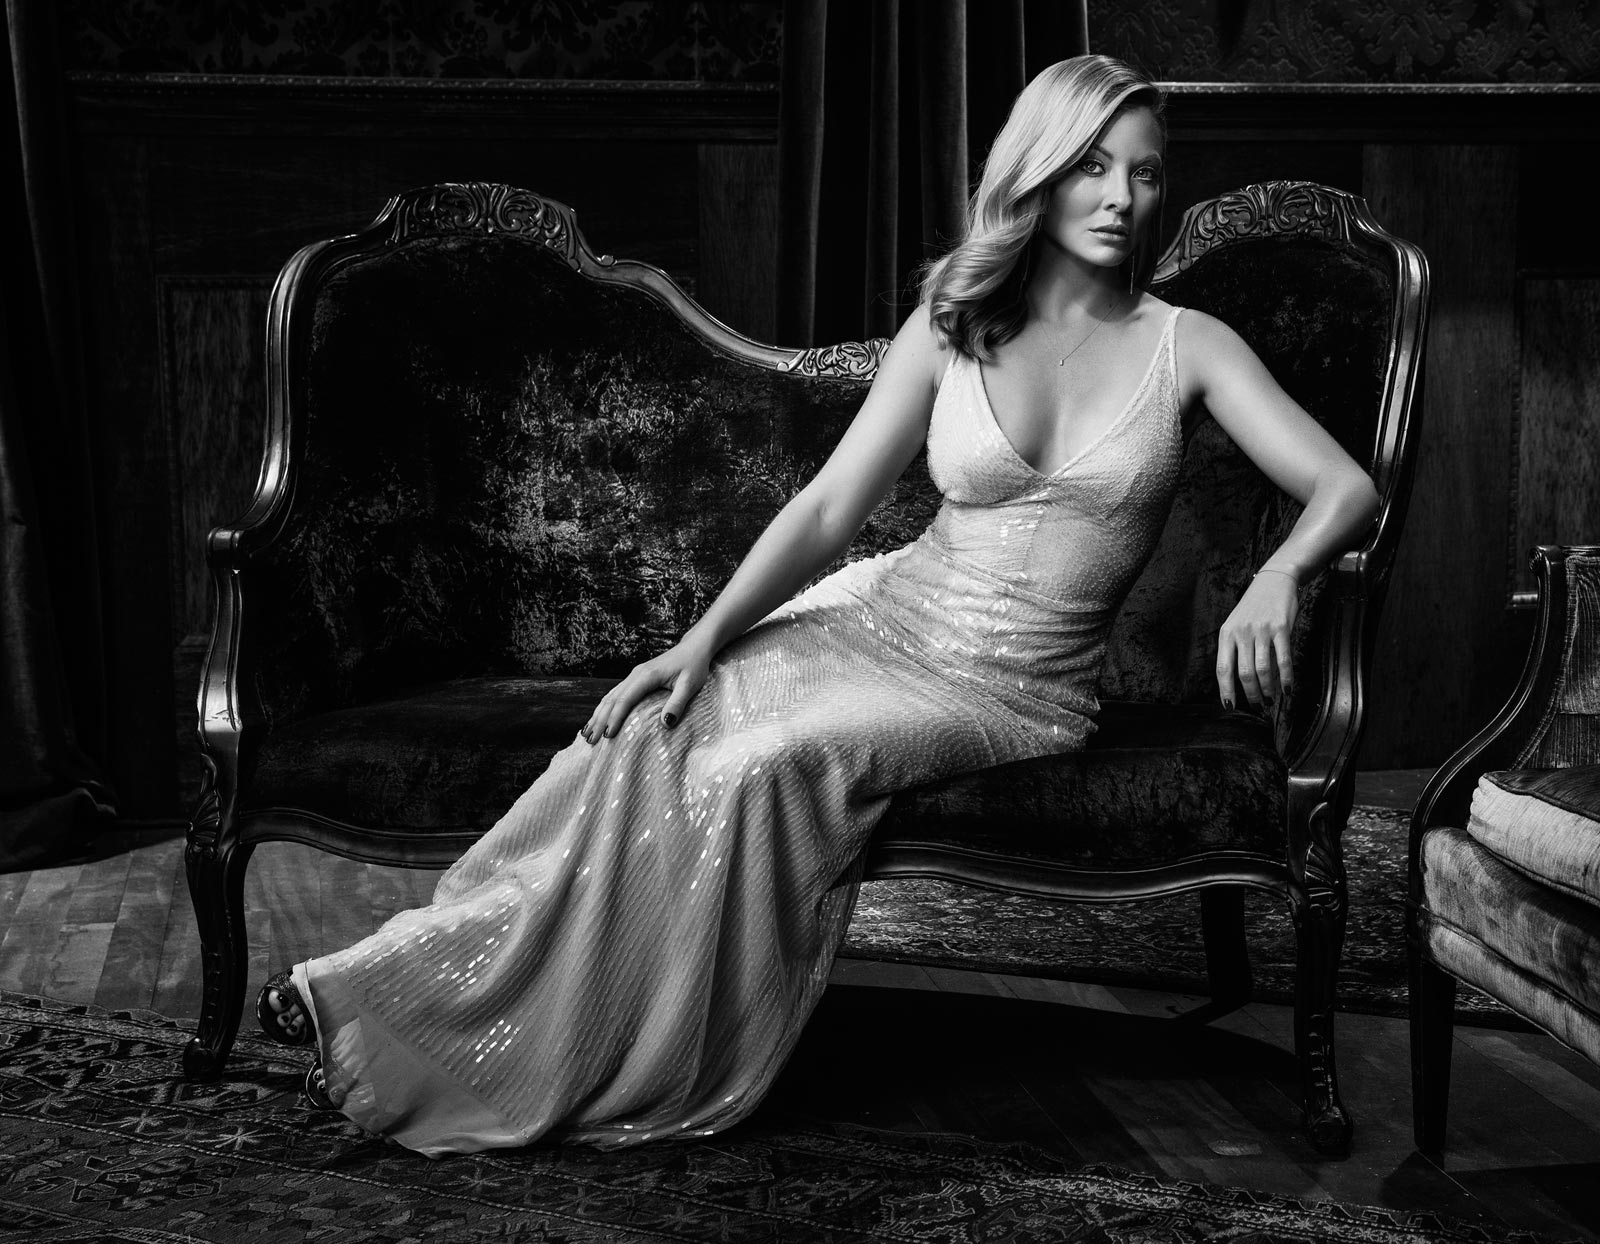 Mark DeLong - Celebrity Photographer - Black and white photo of an actress in a white dress sitting on a piece of antique furniture.